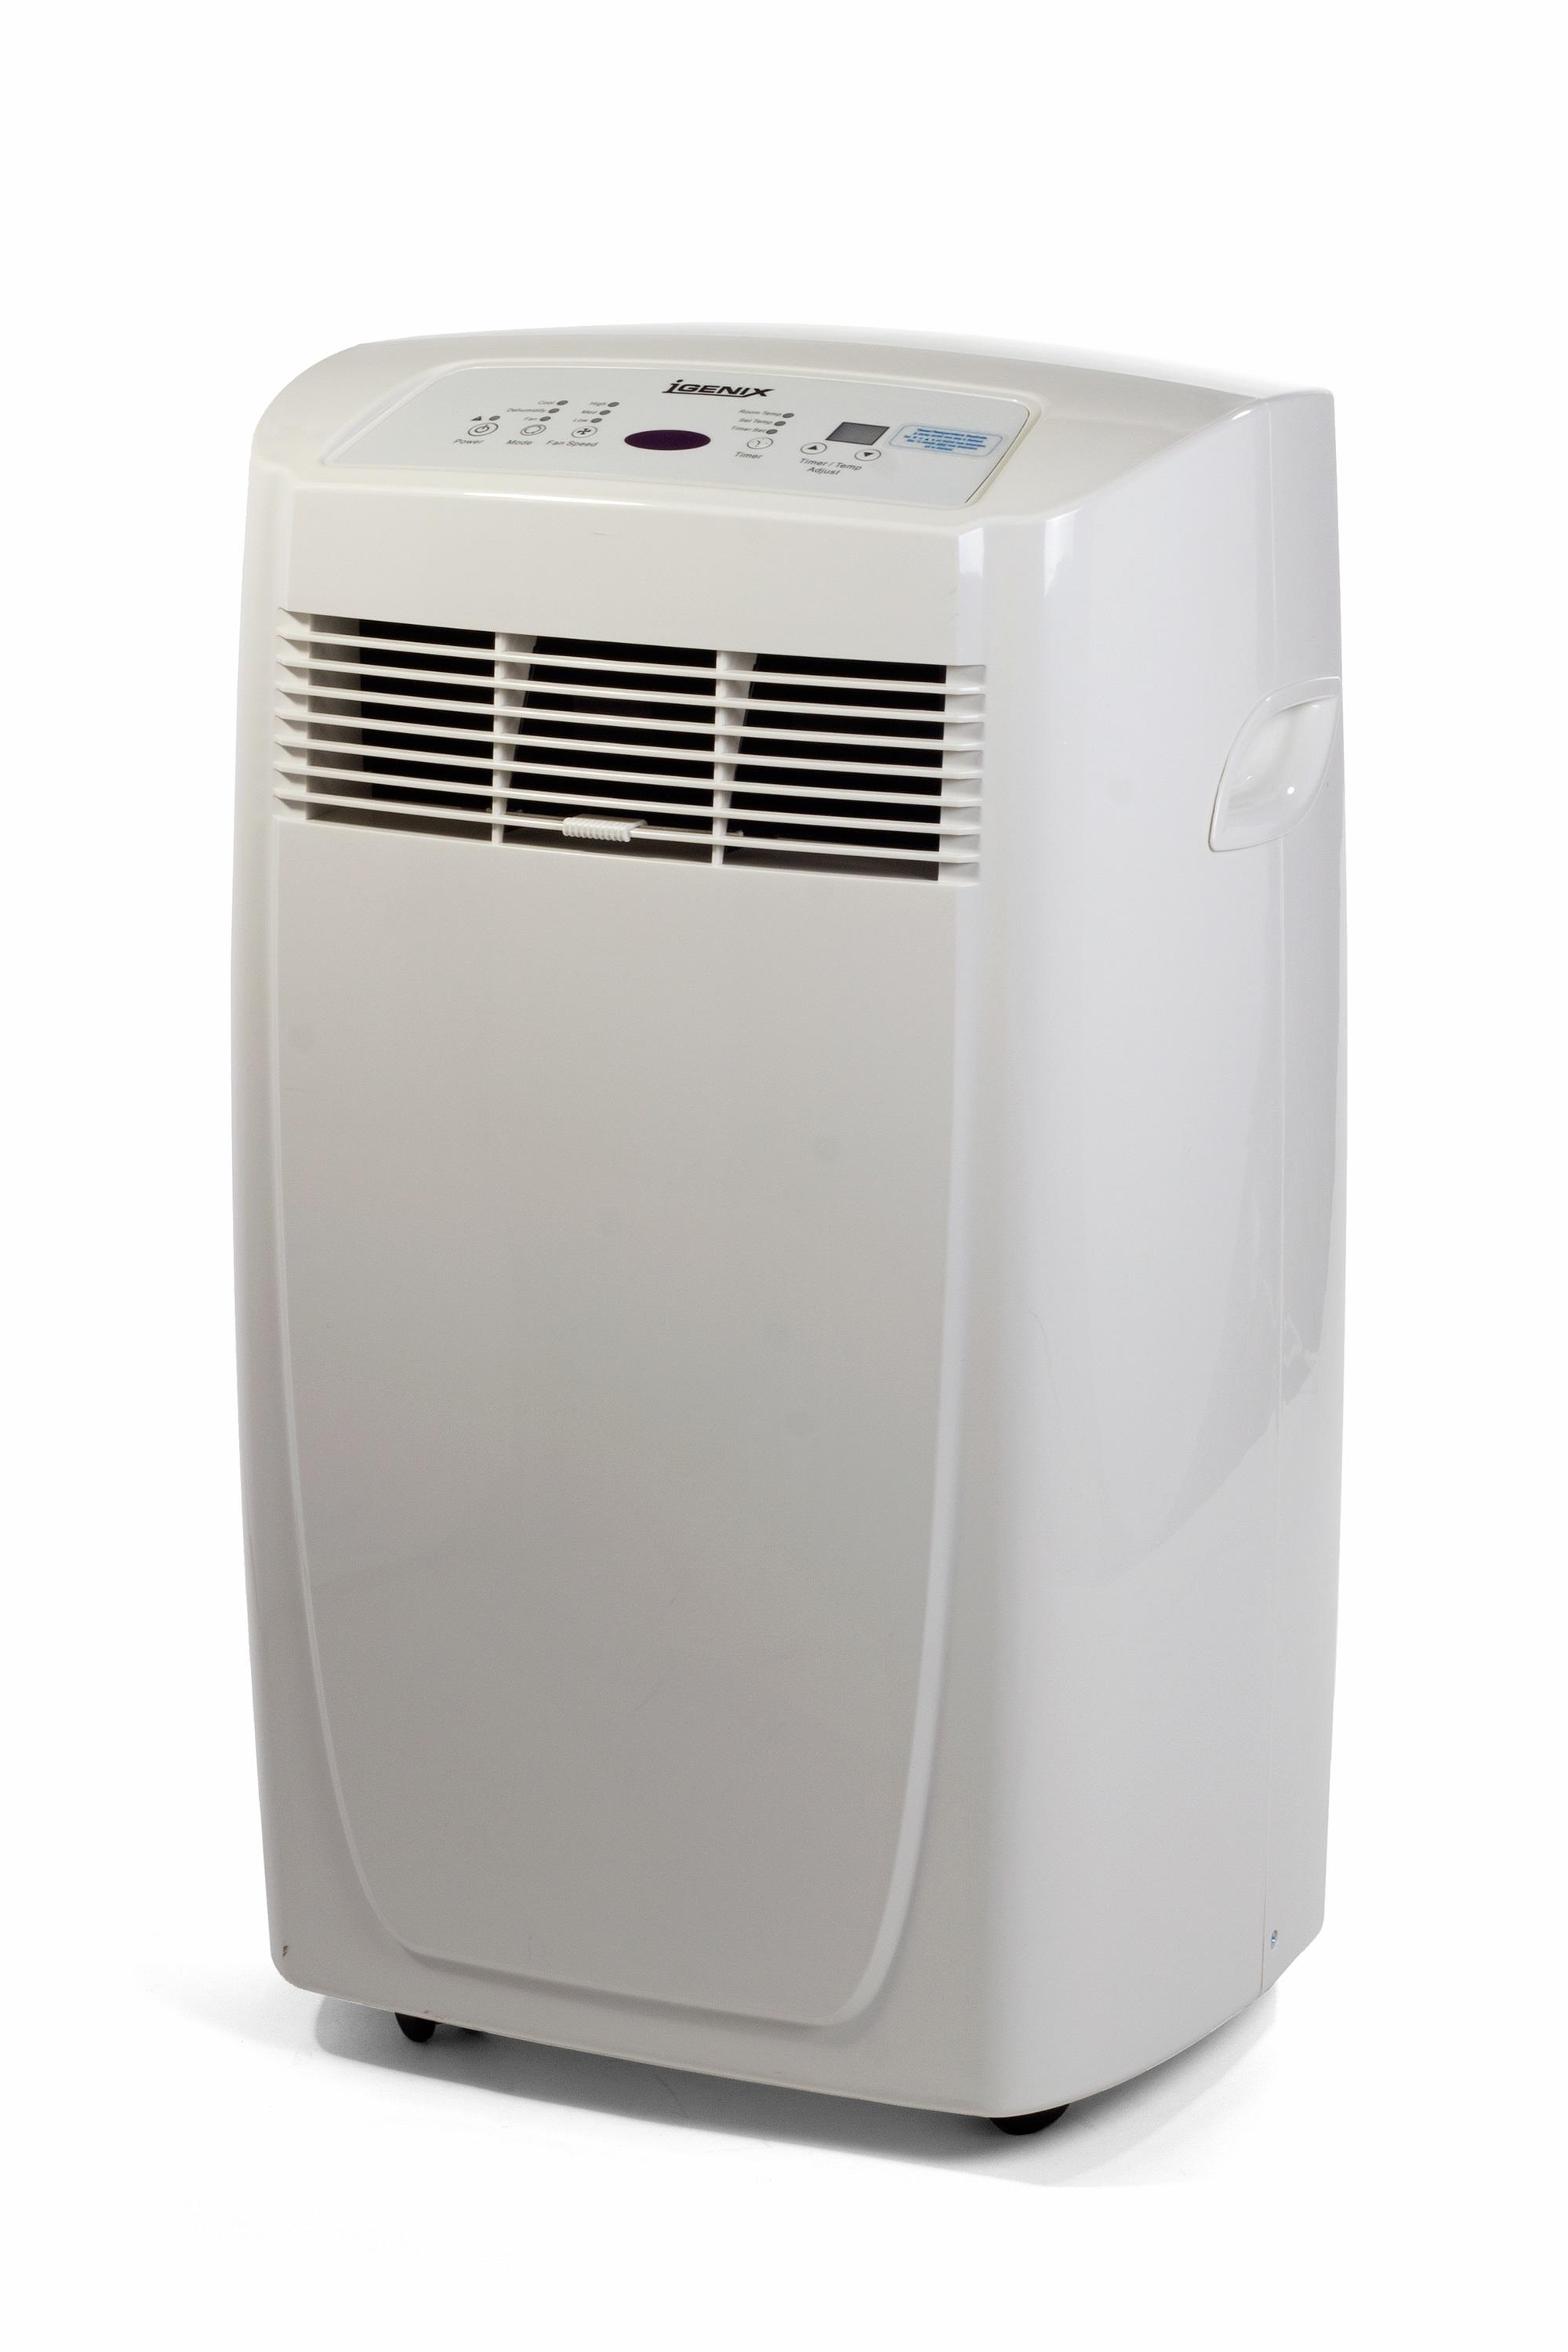 Igenix IG9900 9000 BTU Portable Air Conditioning Unit 900 W: Amazon.co  #526679